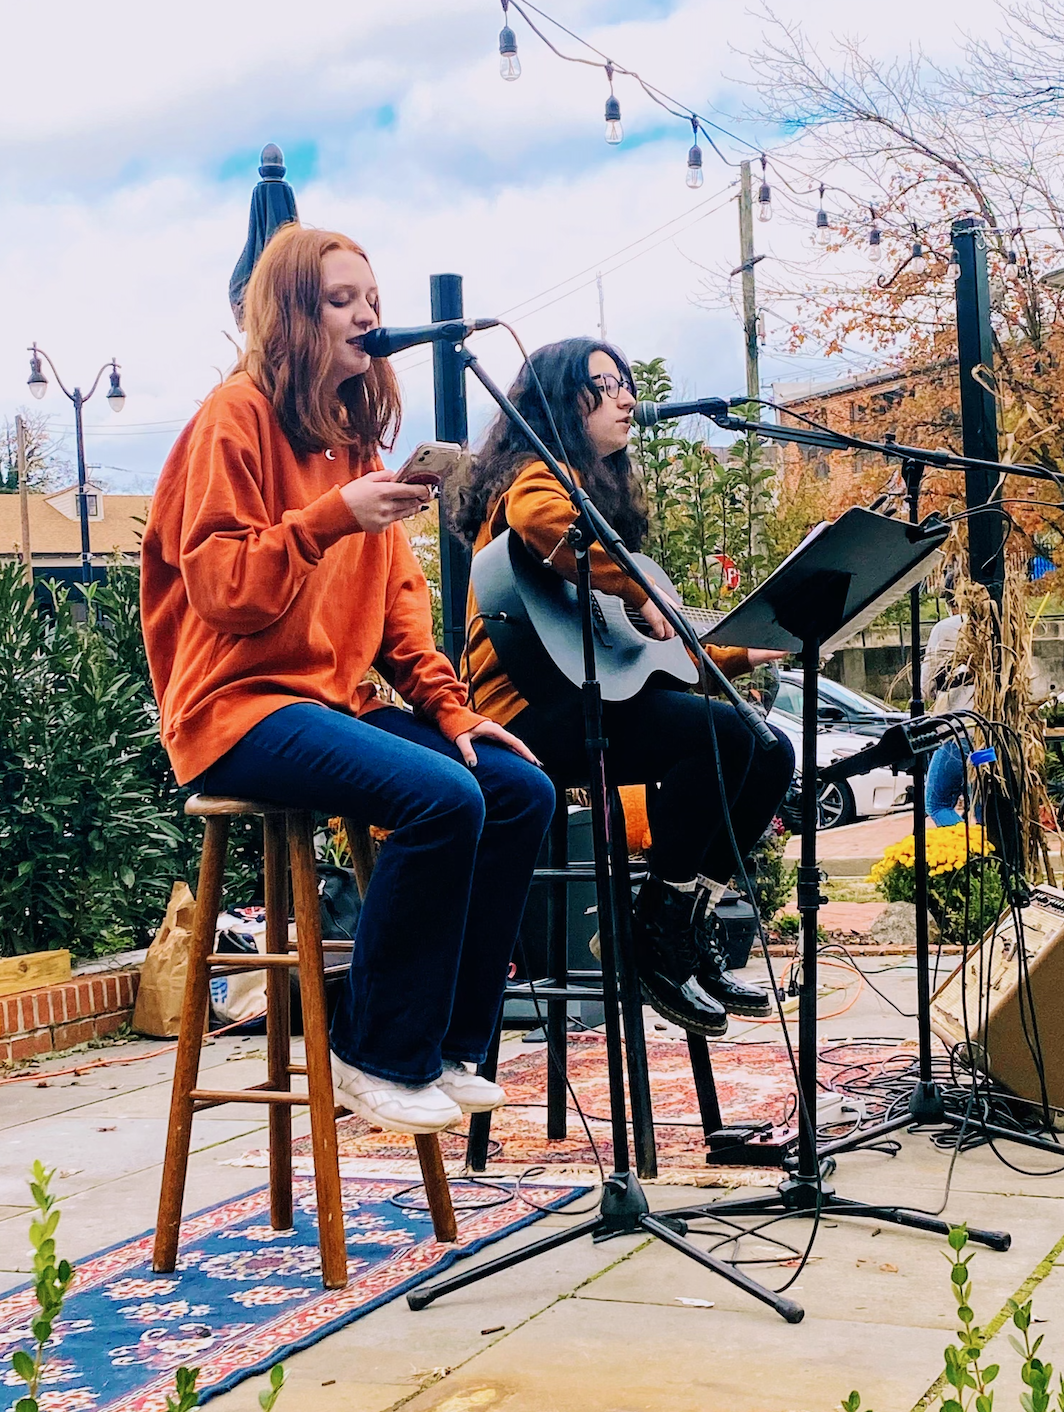 Wilde Lake seniors Shelby Kline (left) and Shanna Kachuriner (right) performing together at an outdoor cafe on October 31, 2020. (Photo taken by Sarah Rubin)